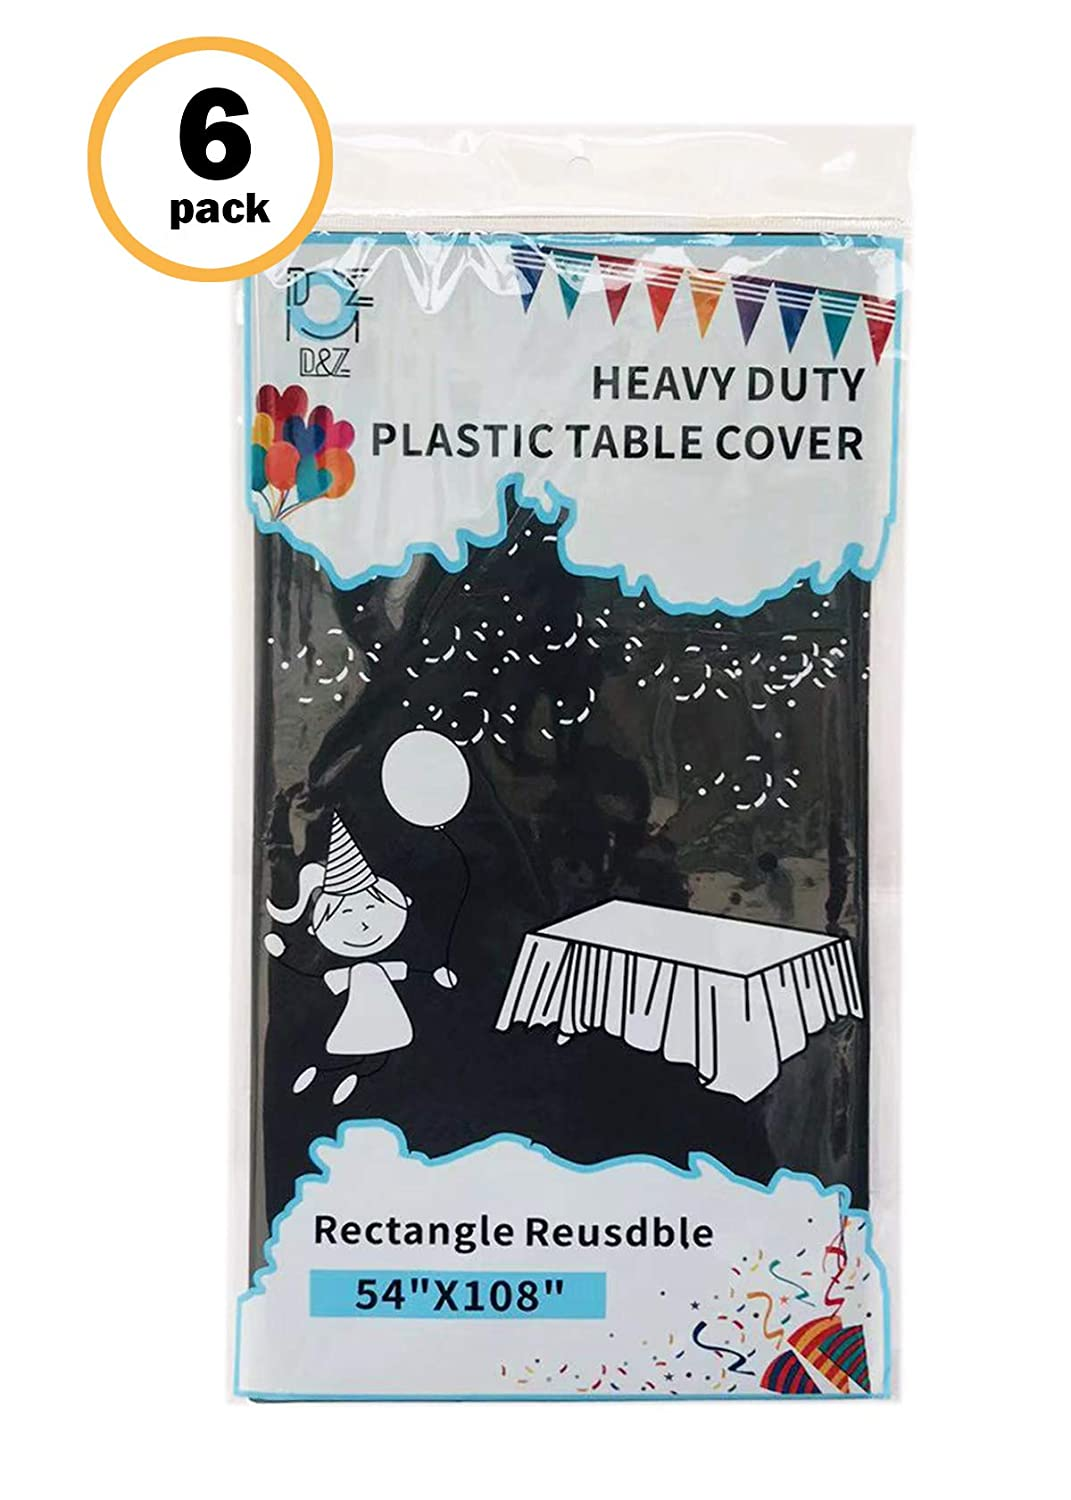 D/&Z 6 Pack Gold Rectangle Plastic Tablecloth Disposable Heavy Duty 54 x 108 Table Covers for Indoor or Outdoor Party Birthday Wedding Christmas